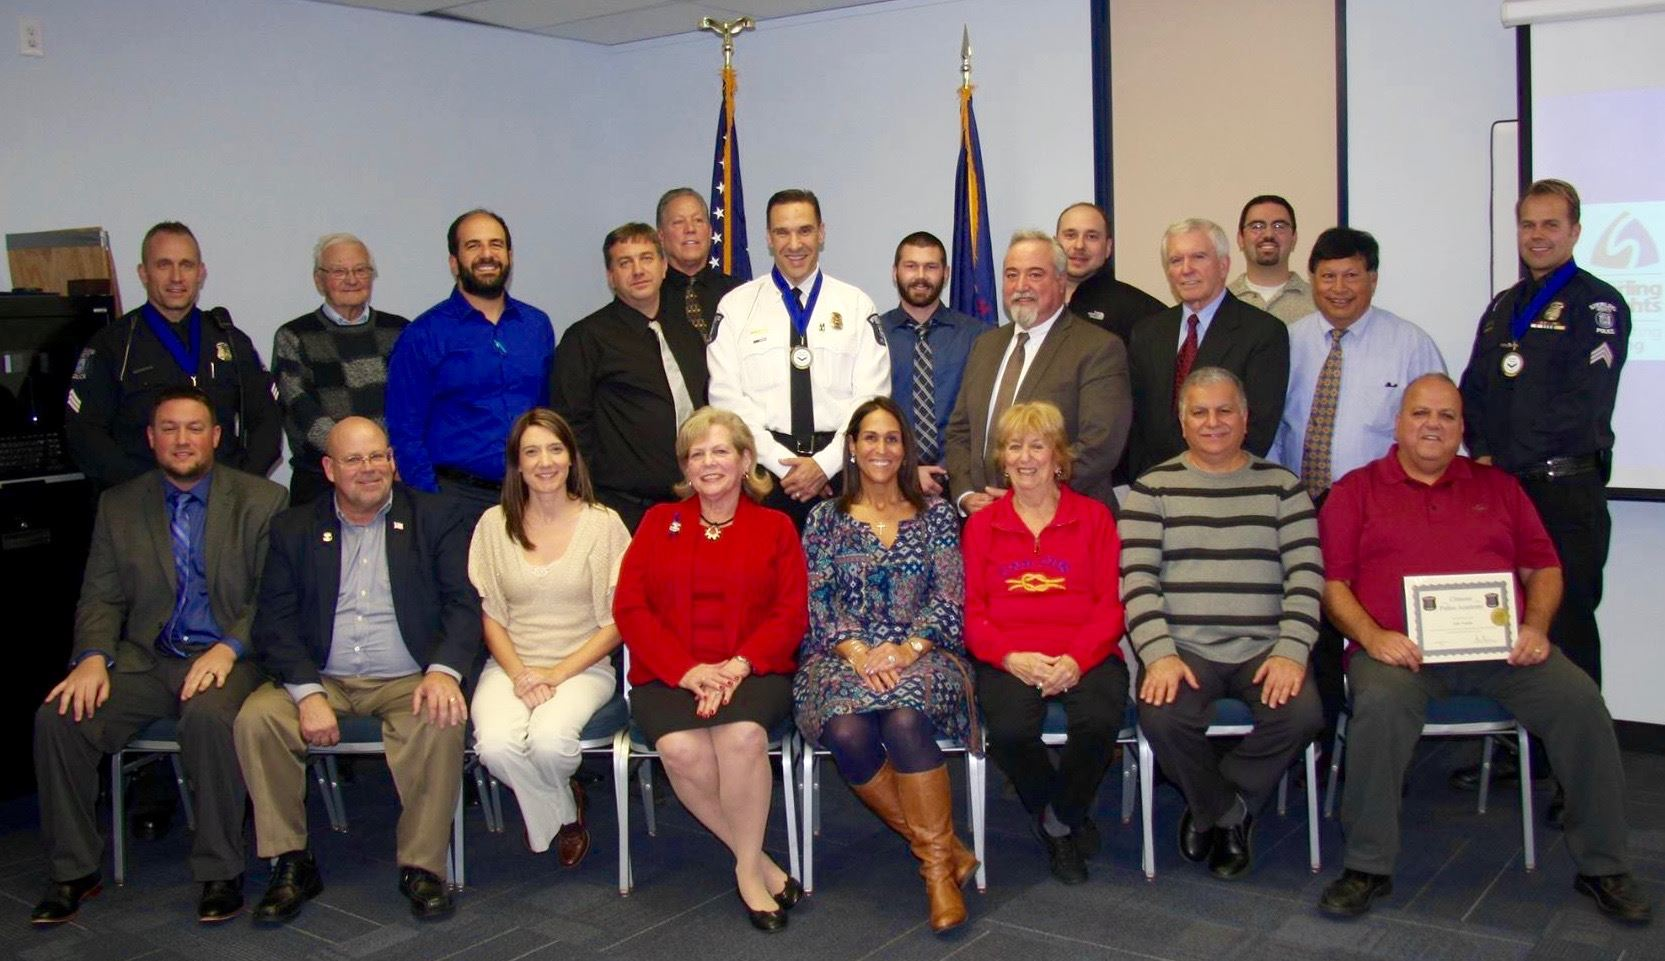 Group shot of Citizens Police Academy graduates